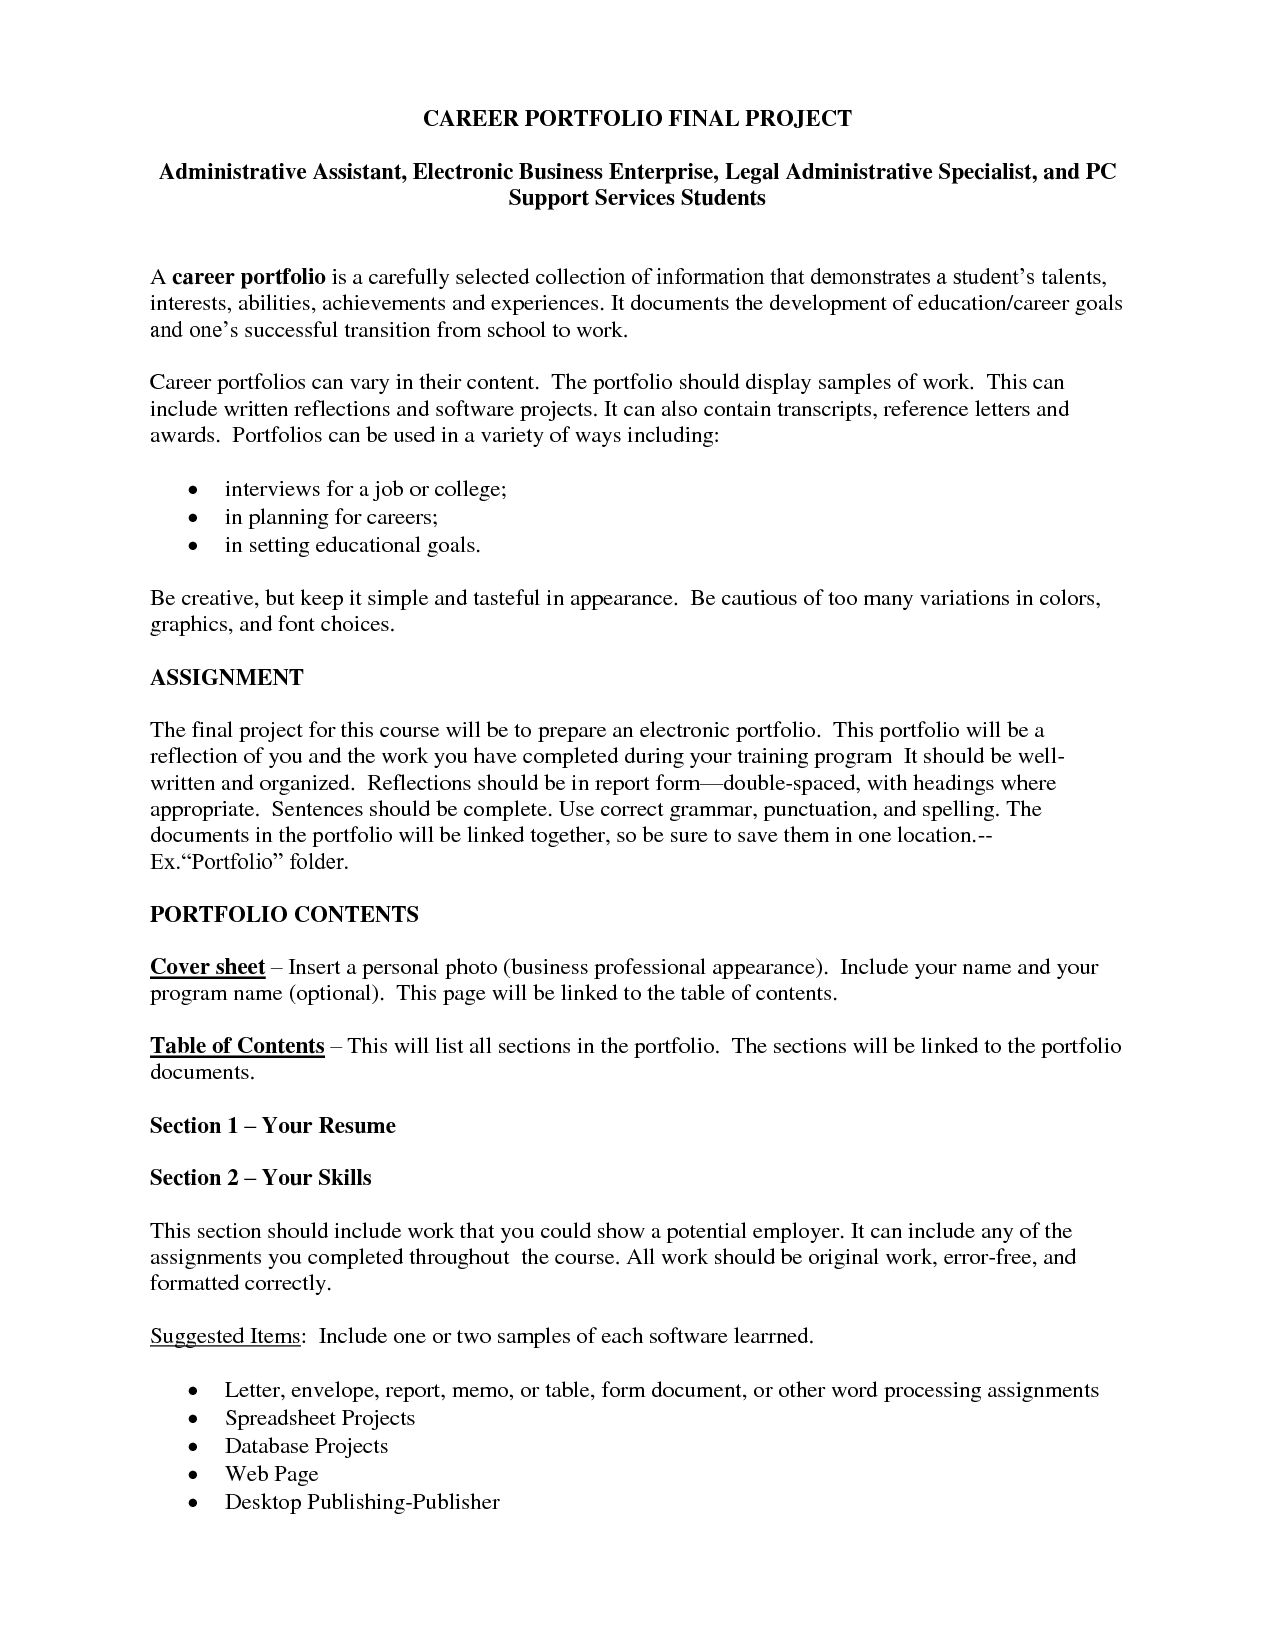 Resume Medical Office Manager Resume Template For Medical Administrative Assistant